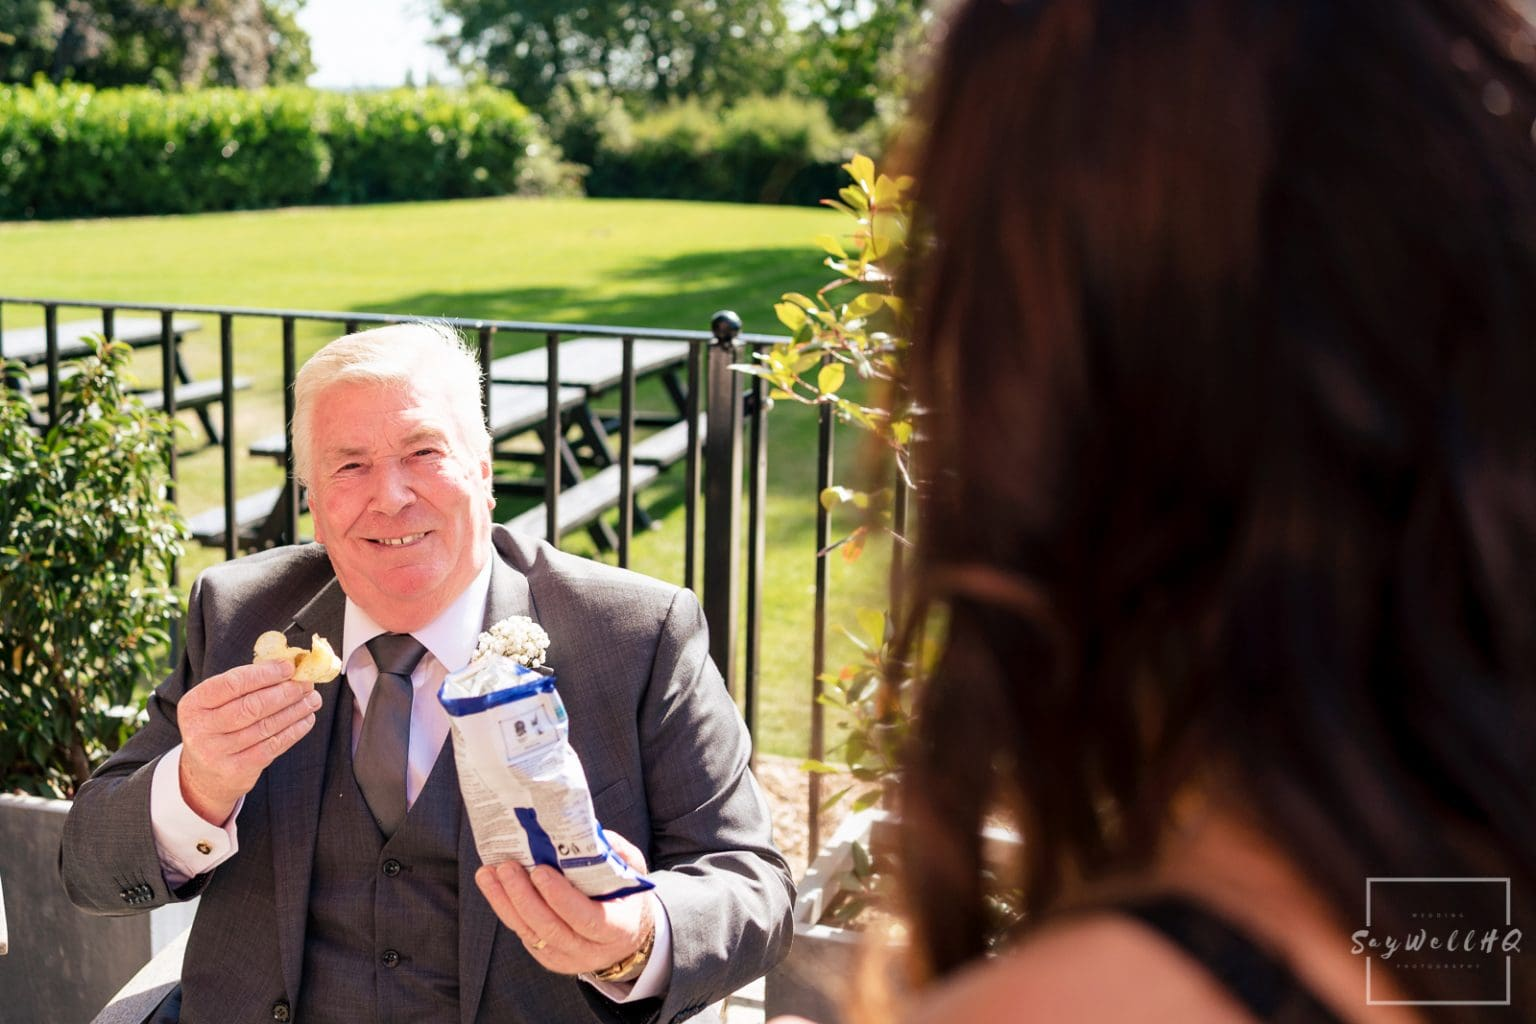 Winstanley House Wedding Photography - wedding guests settle down ready for the outdoor summer wedding